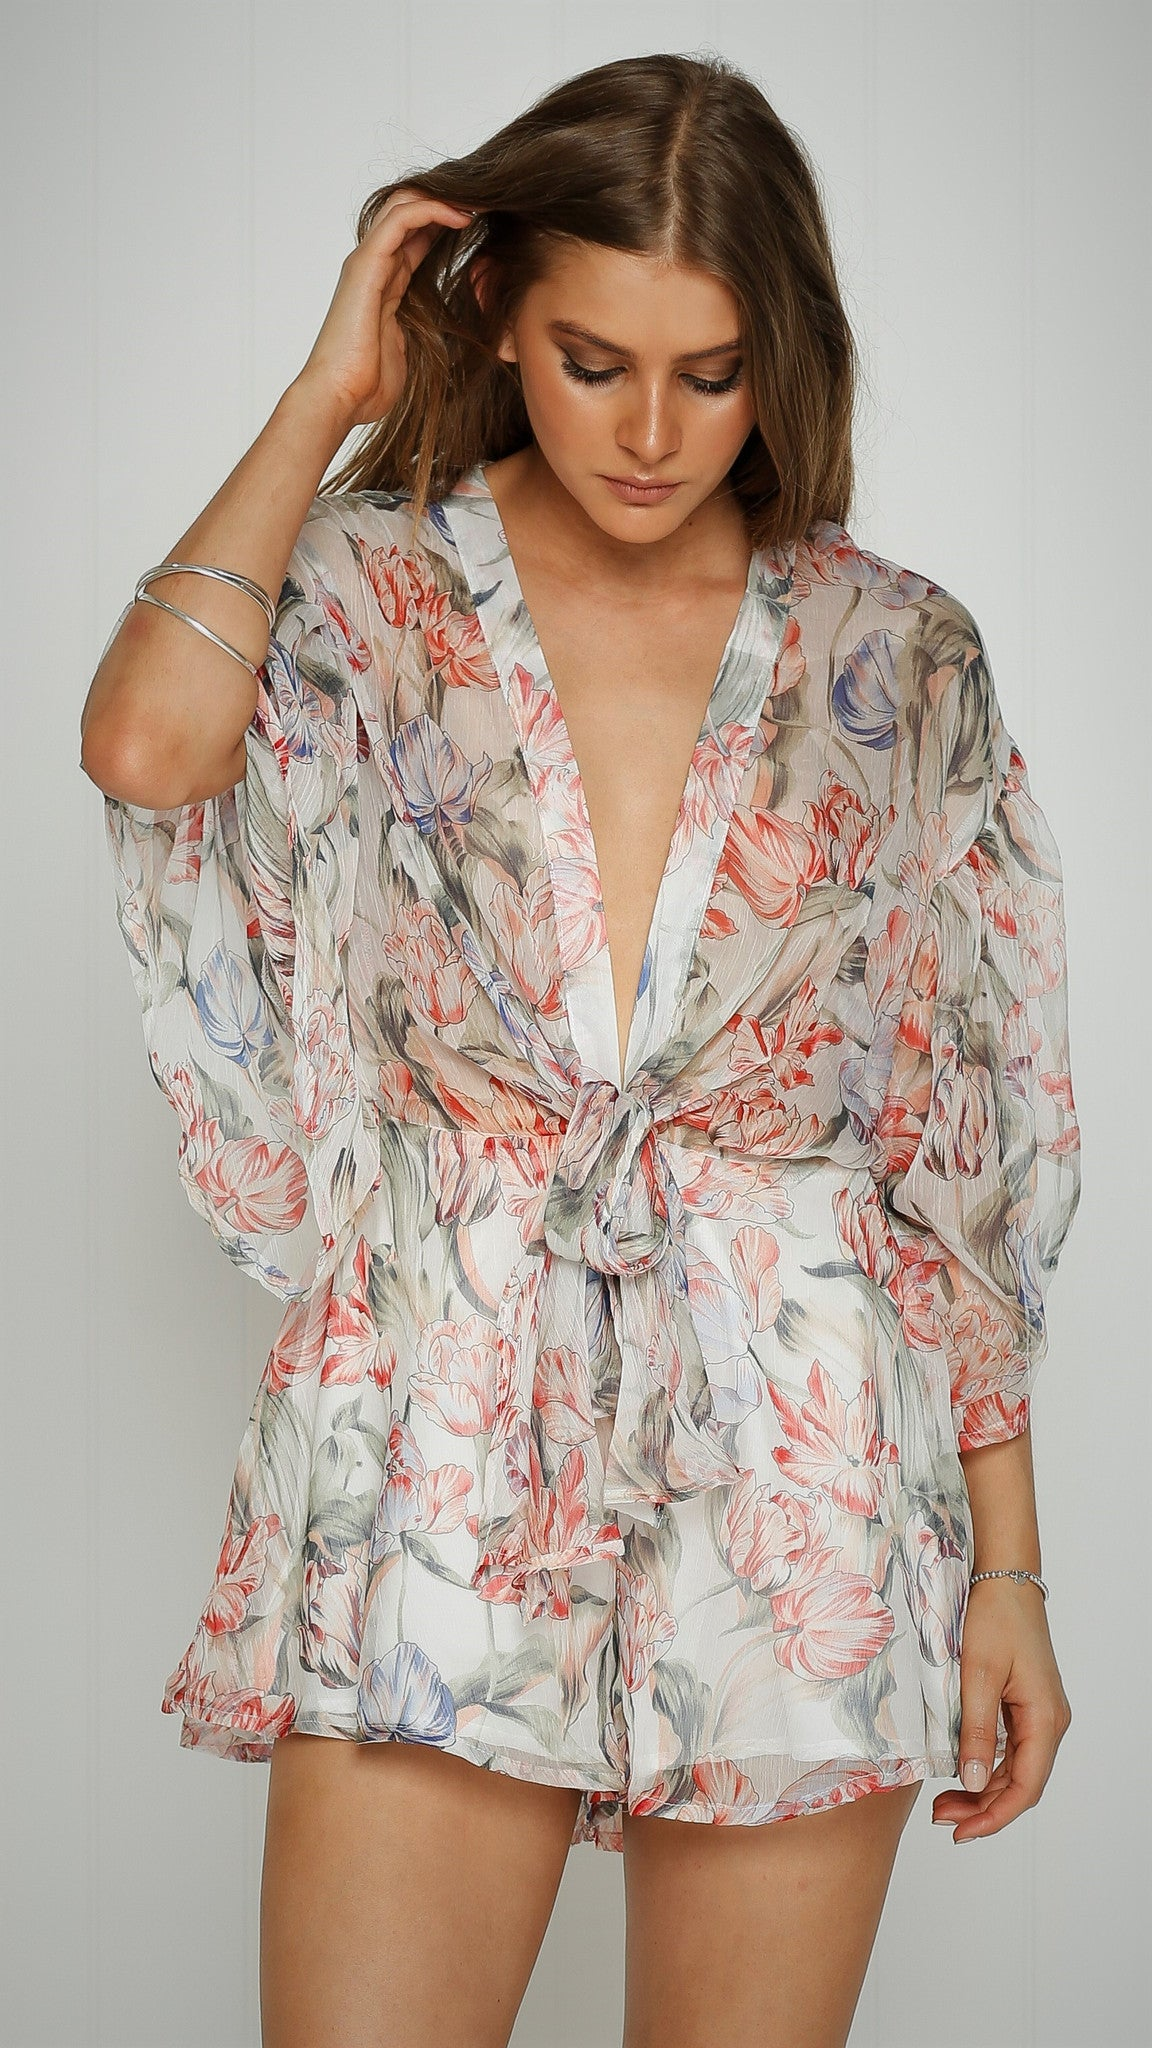 Never Let Go Playsuit